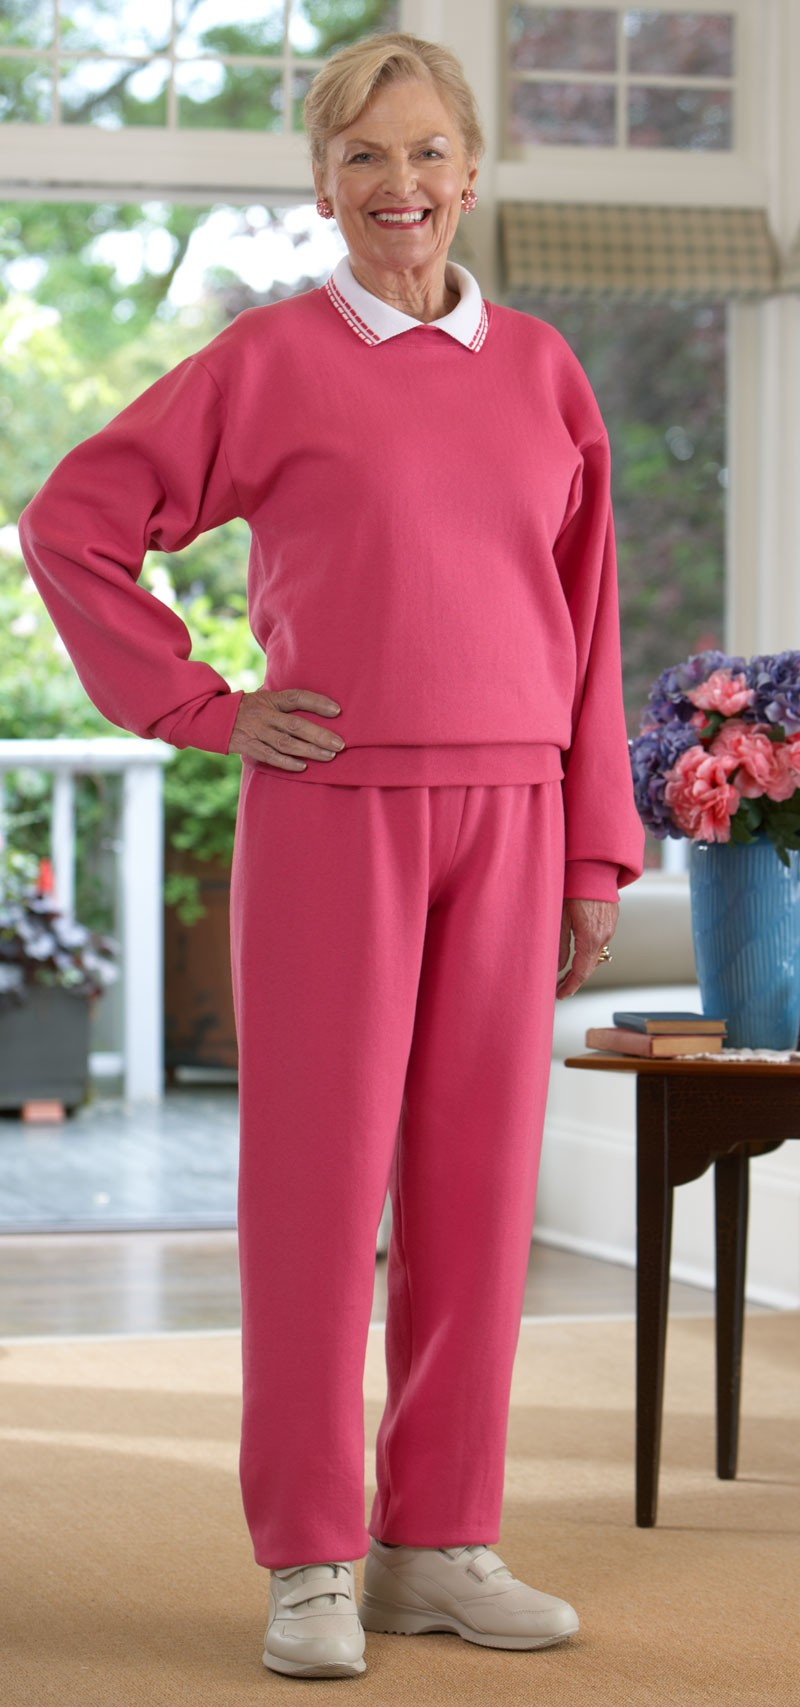 Women's Large Size Basic Sweatsuit with Collar (2X-4X ...